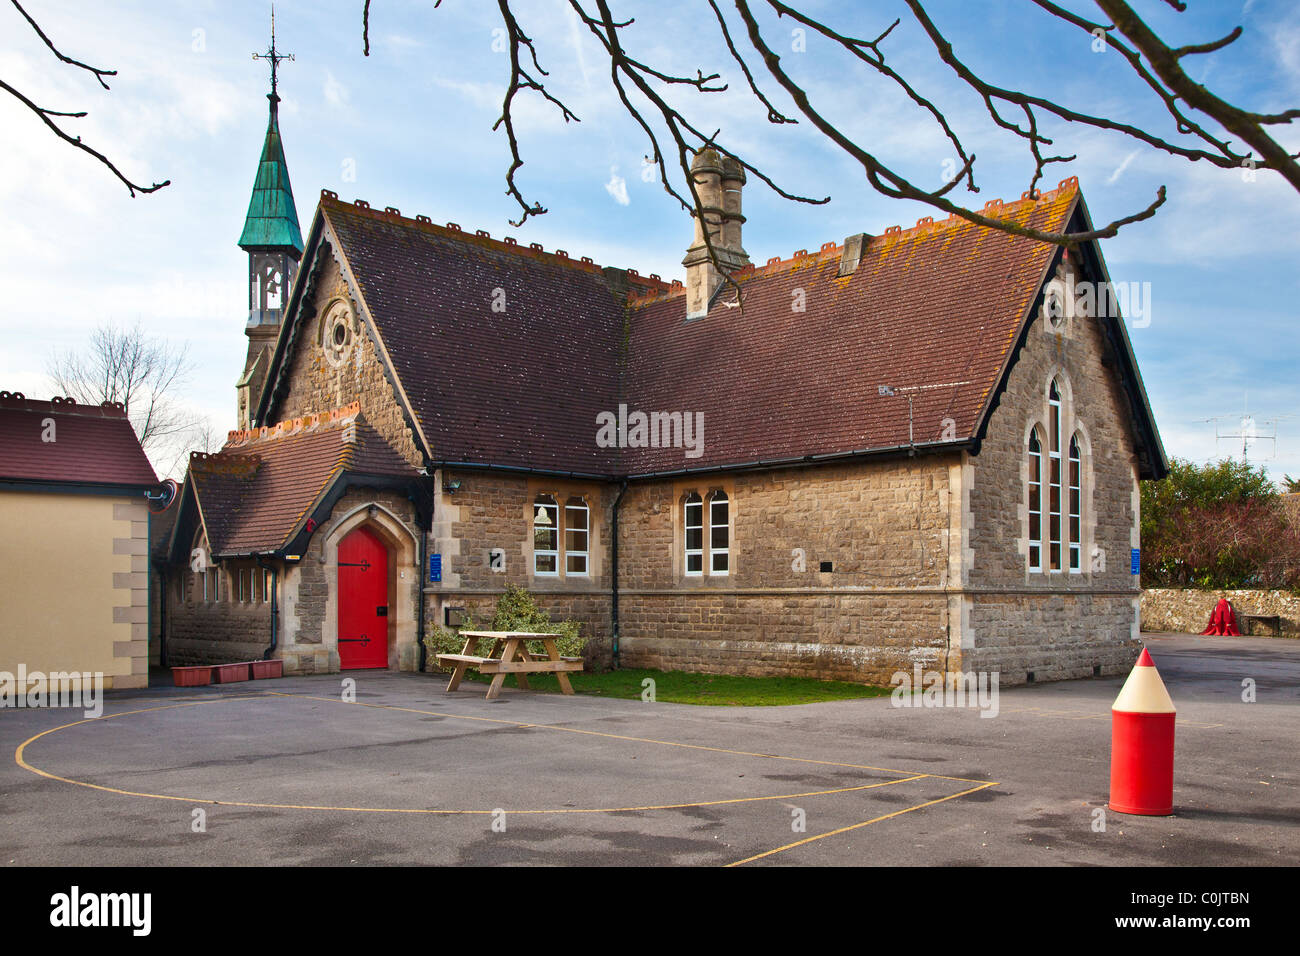 A typical English country primary school in the Wiltshire village of South Marston near Swindon, England, UK with - Stock Image